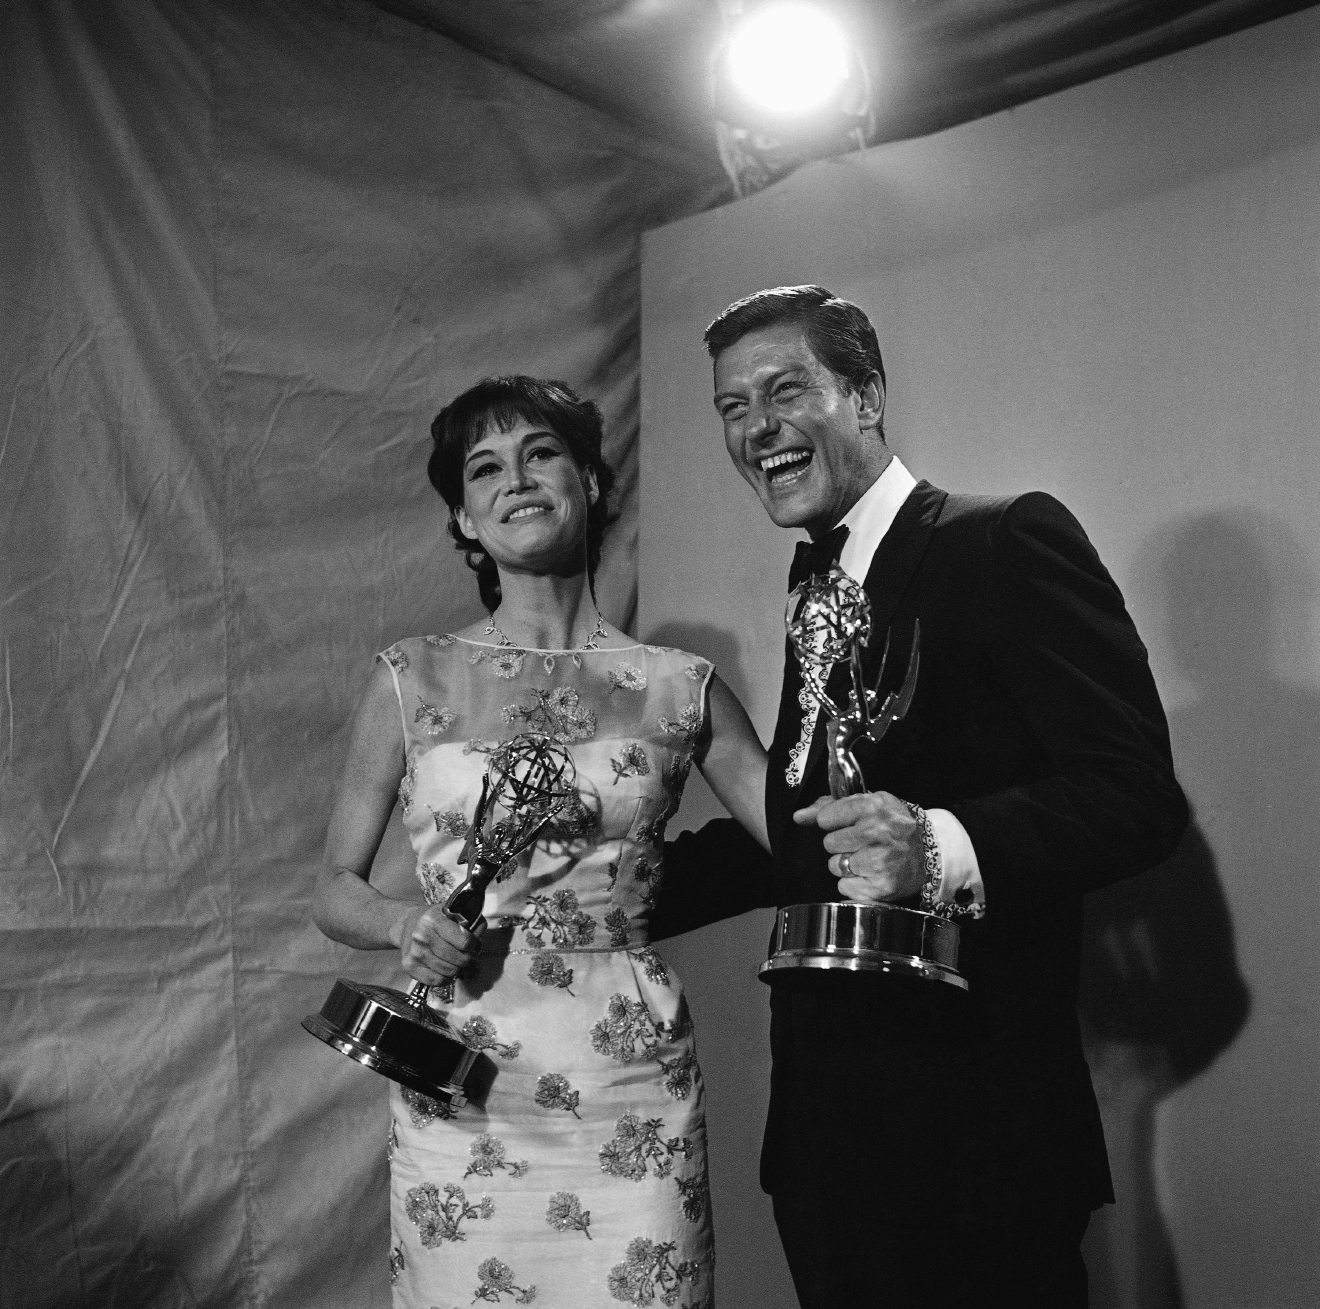 Dick Van Dyke, right, and Mary Tyler Moore clutch their Emmy Awards after being named the leading actor and actress in a comedy series for their roles in the Dick Van Dyke Show, May 22, 1966, Hollywood, Calif. The show, which ends a long television run this week, crowned its success by scoring four times. (AP Photo)